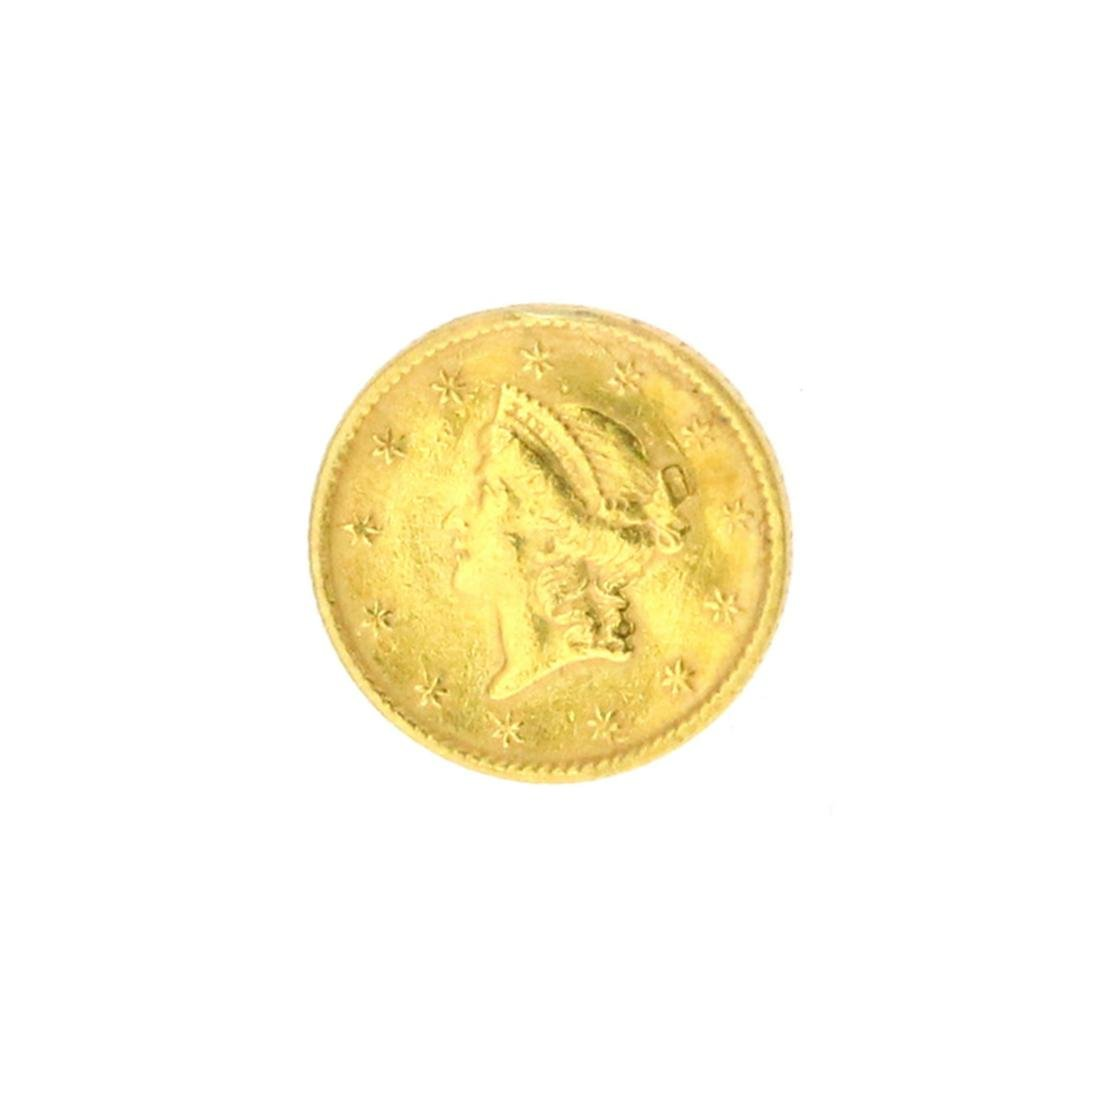 Extremely Rare 1853 $1 U.S. Liberty Head Gold Coin